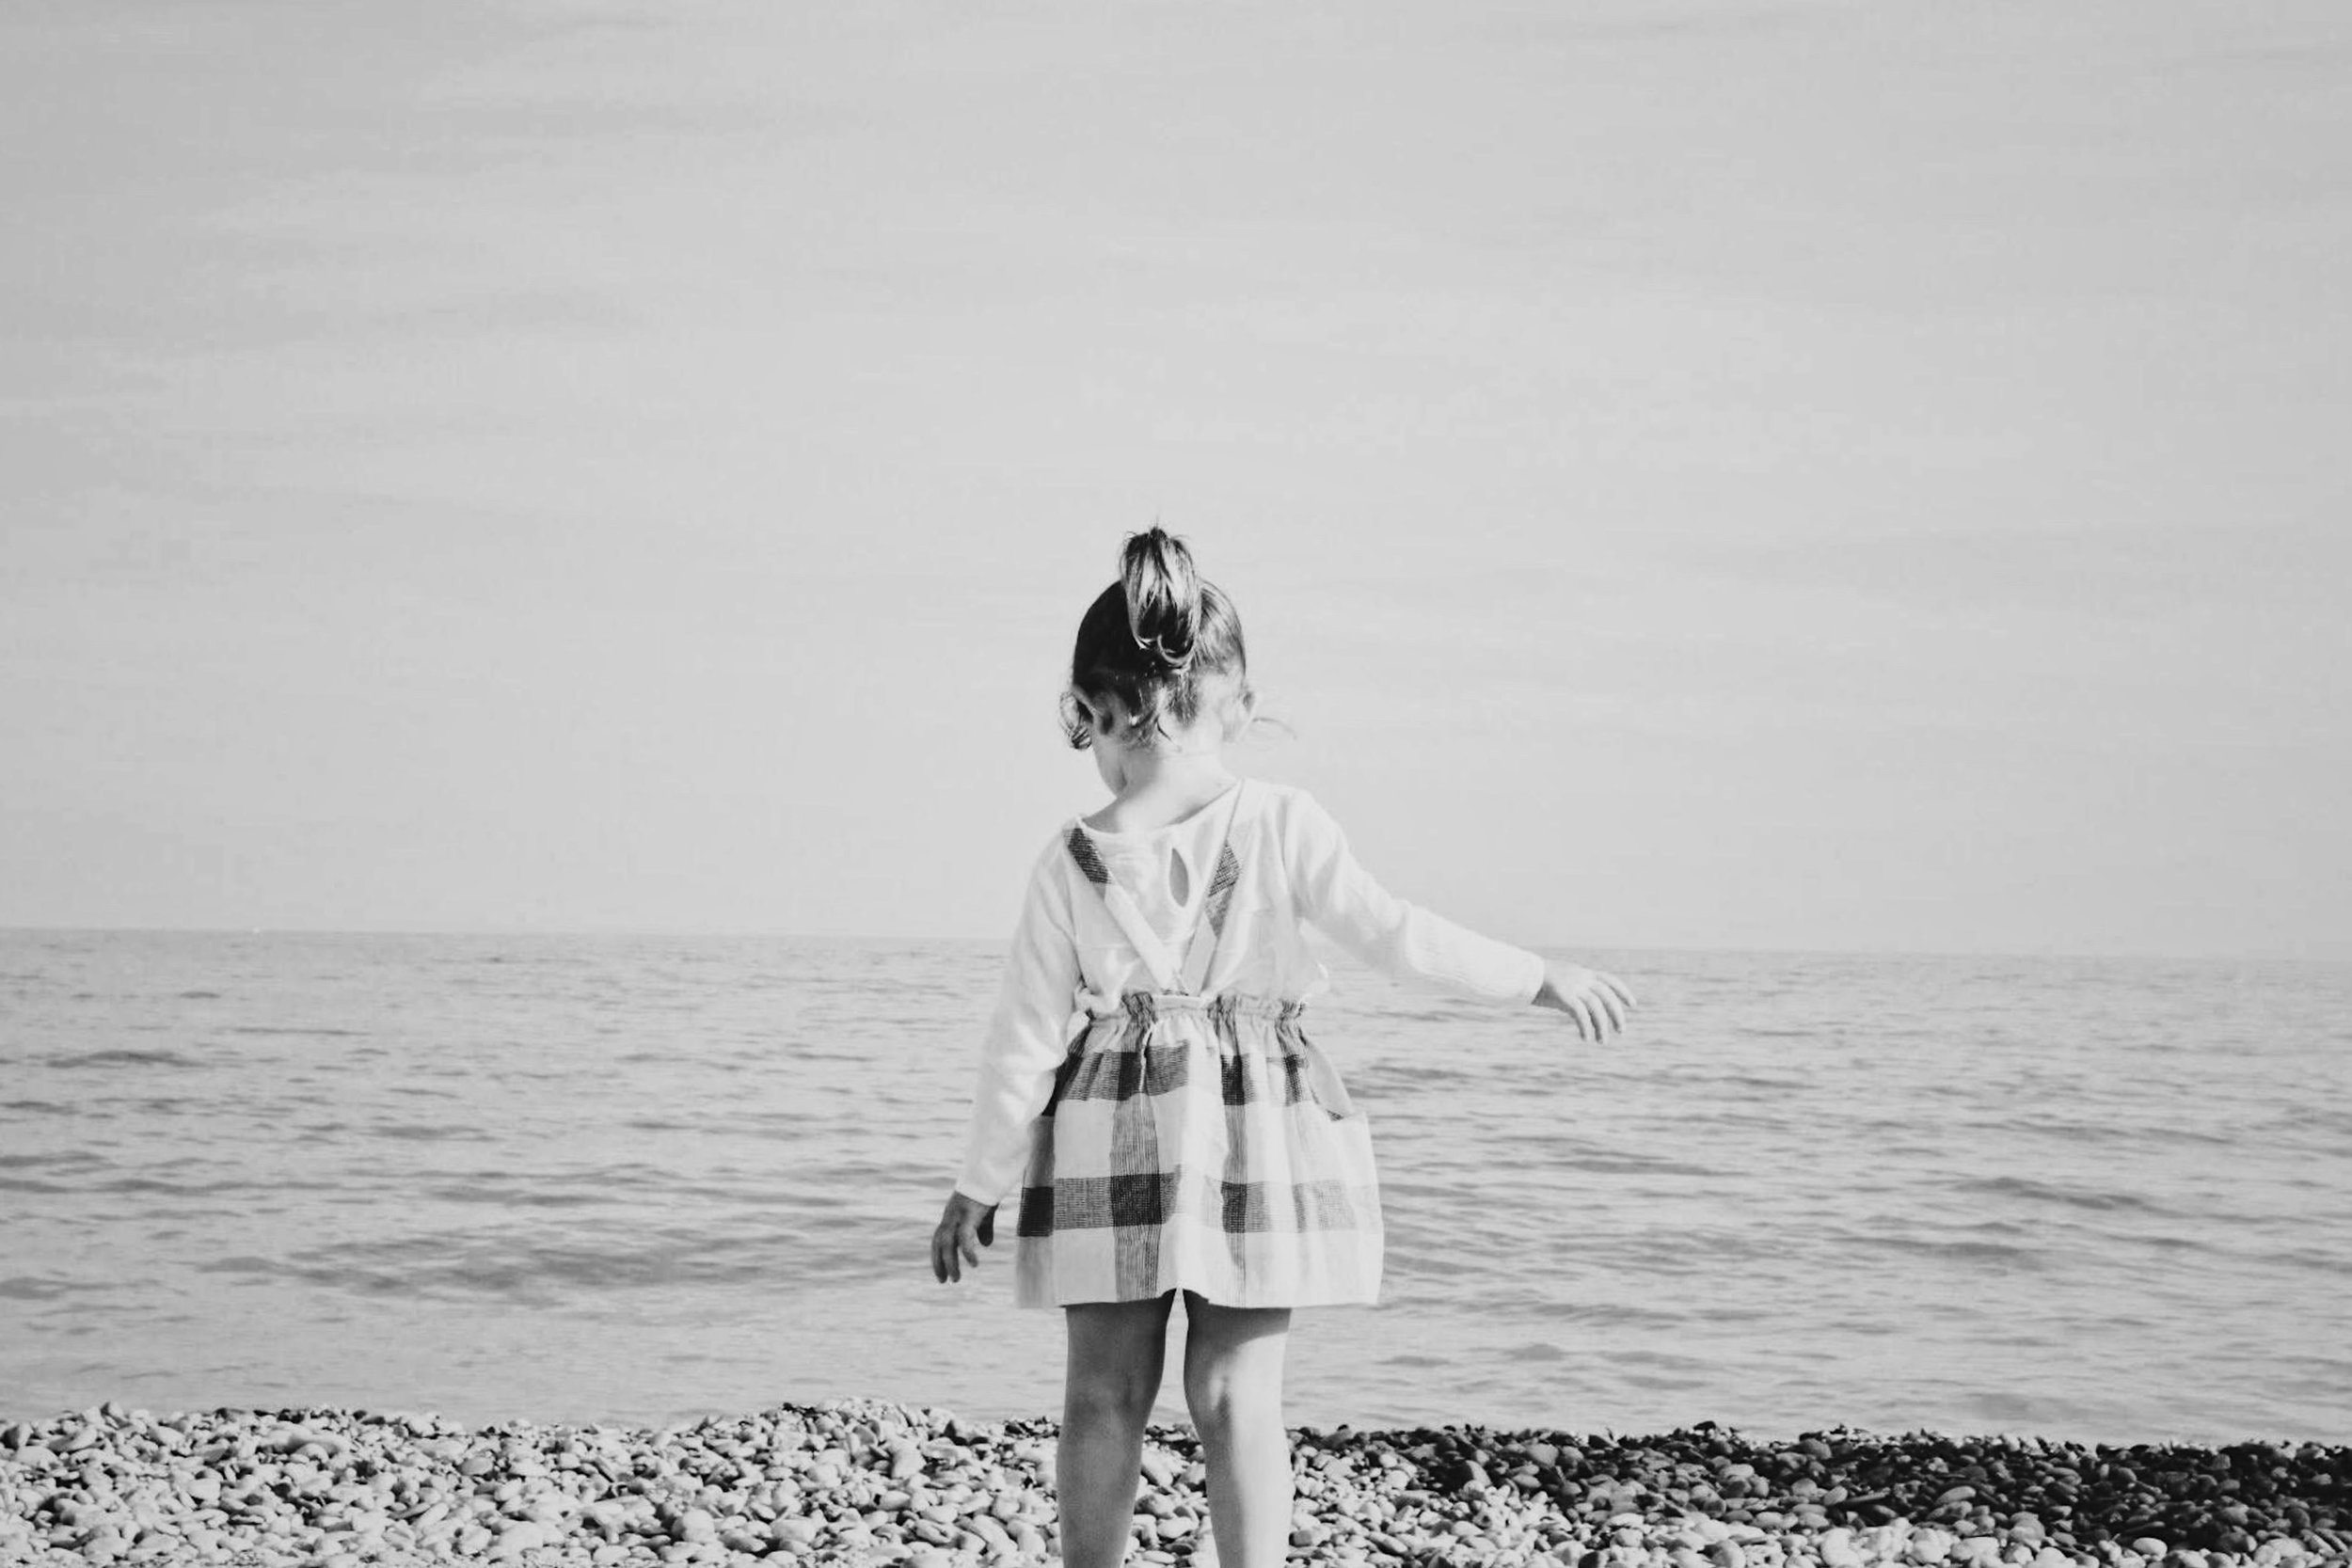 A black and white photograph of little girl starring at the ocean from the beach.